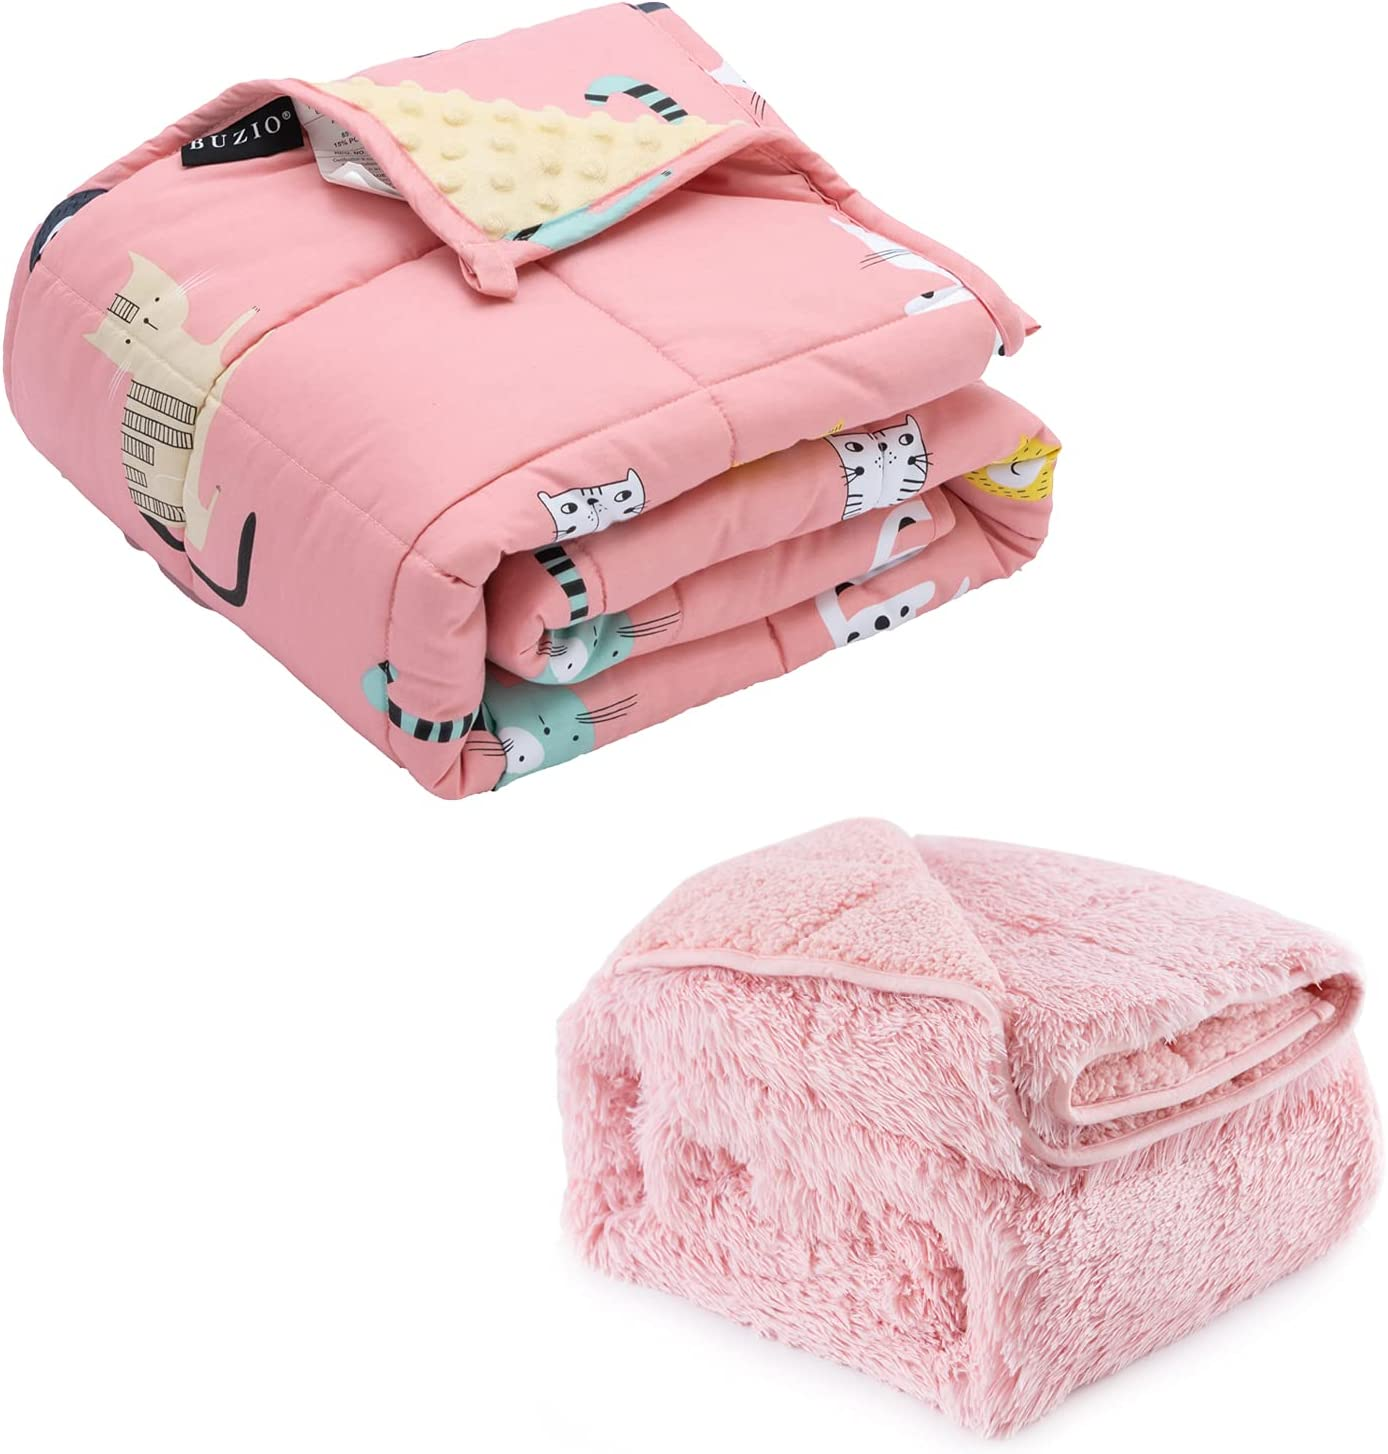 Weighted Blanket 3 High quality lbs for Kids Cozy Fleece and Max 66% OFF Cot Ultra Minky